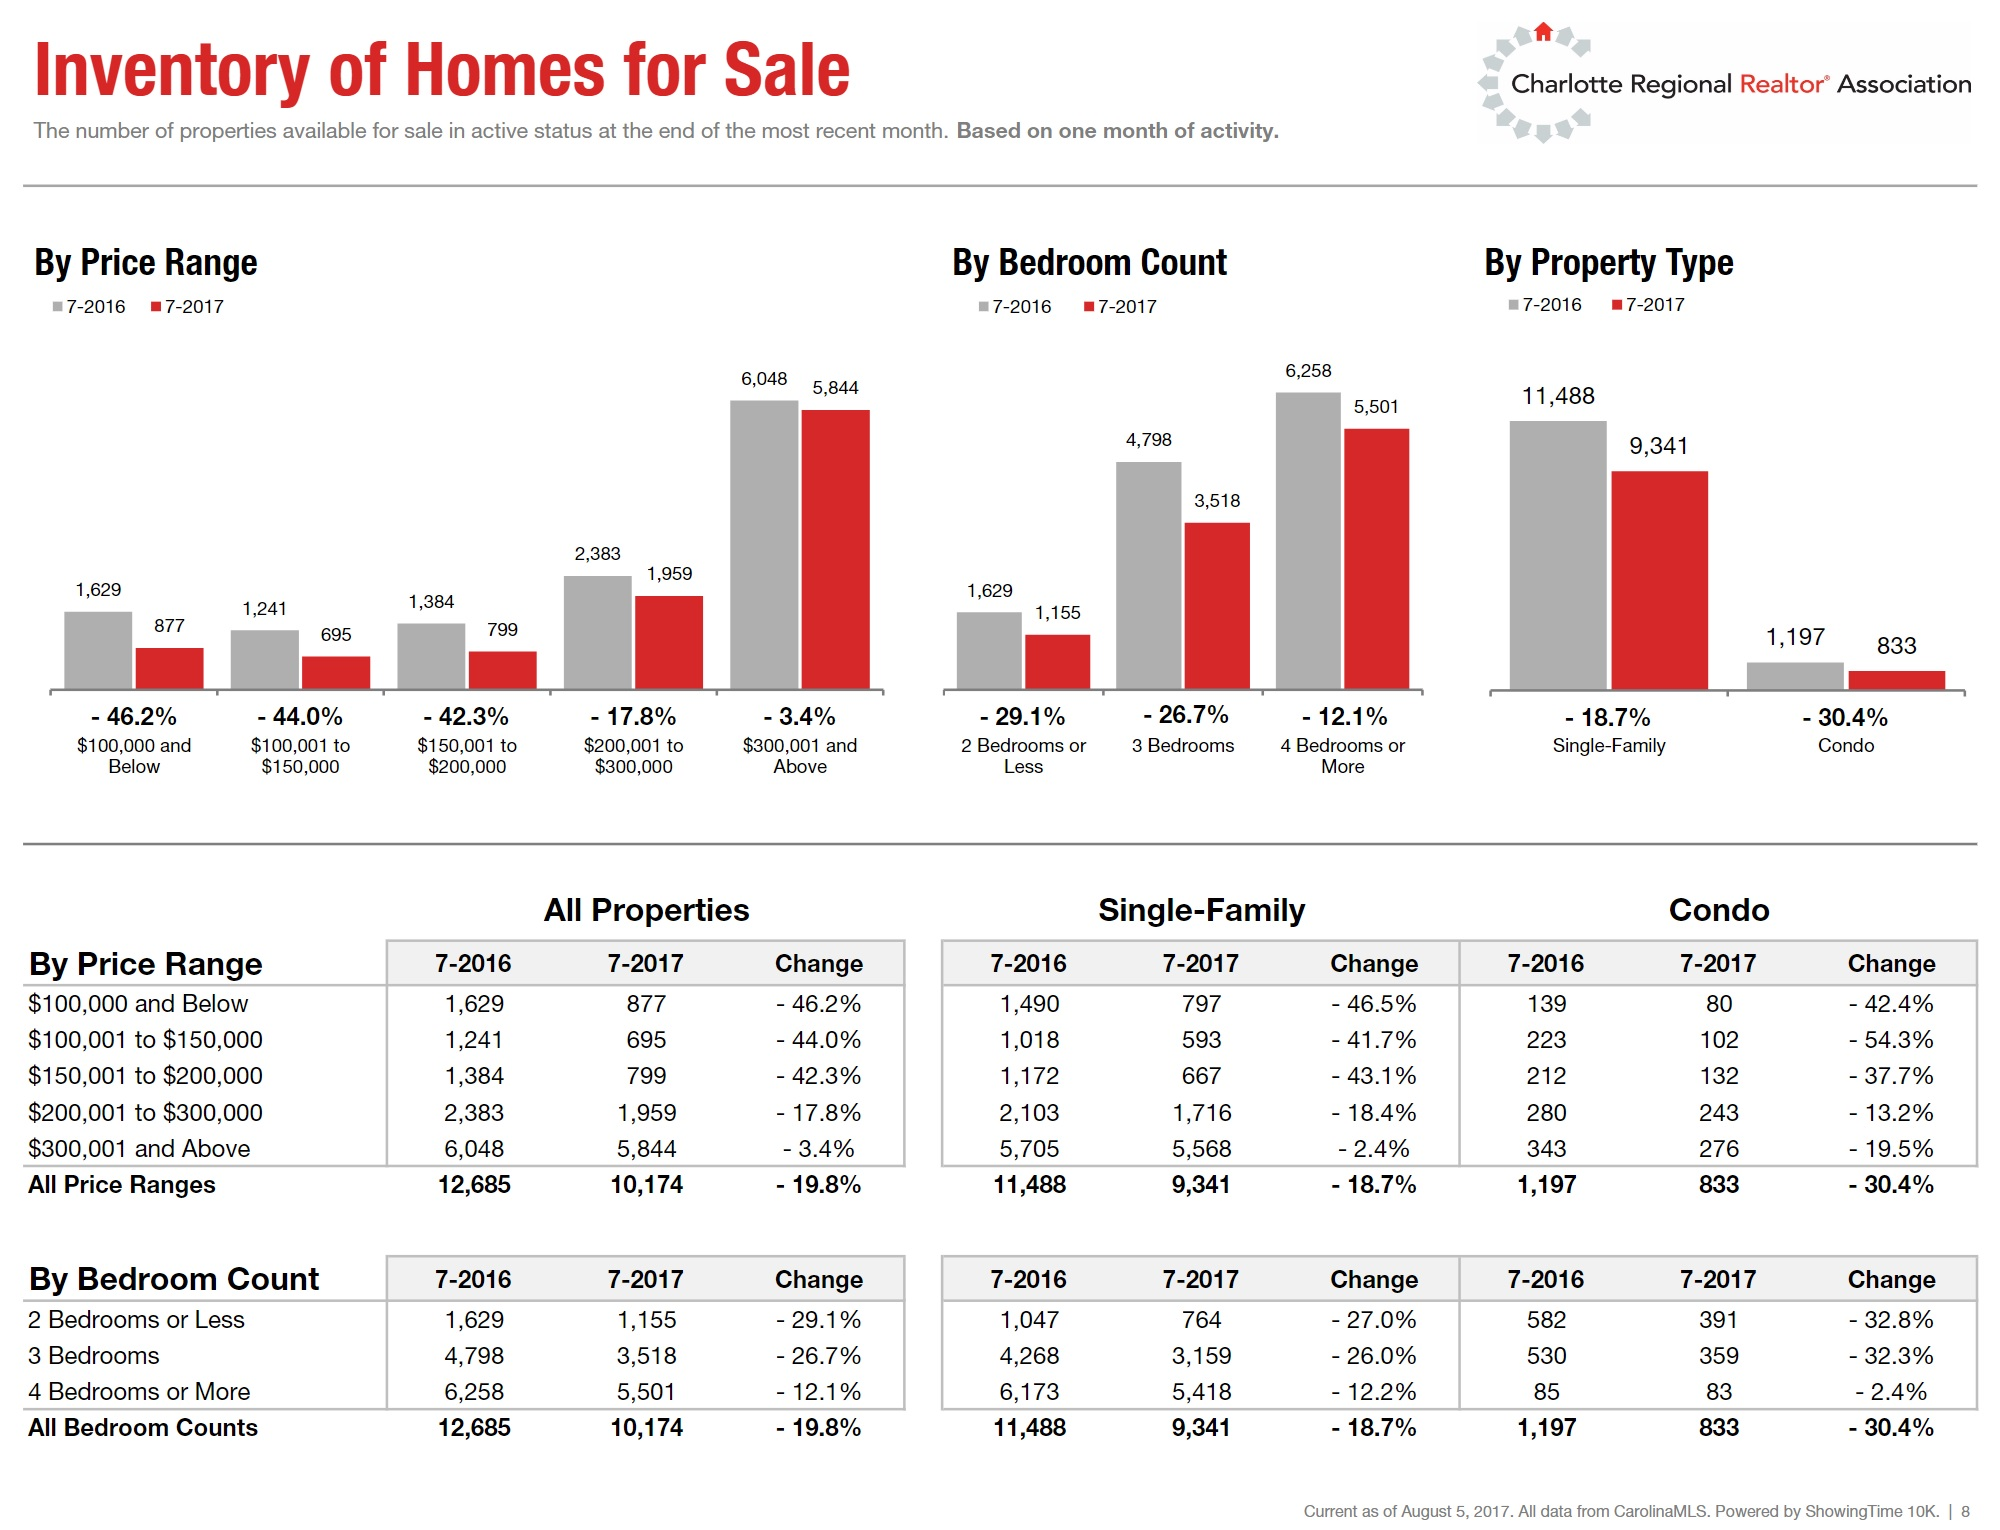 Inventory of Homes For Sale In Charlotte NC Region July 2017